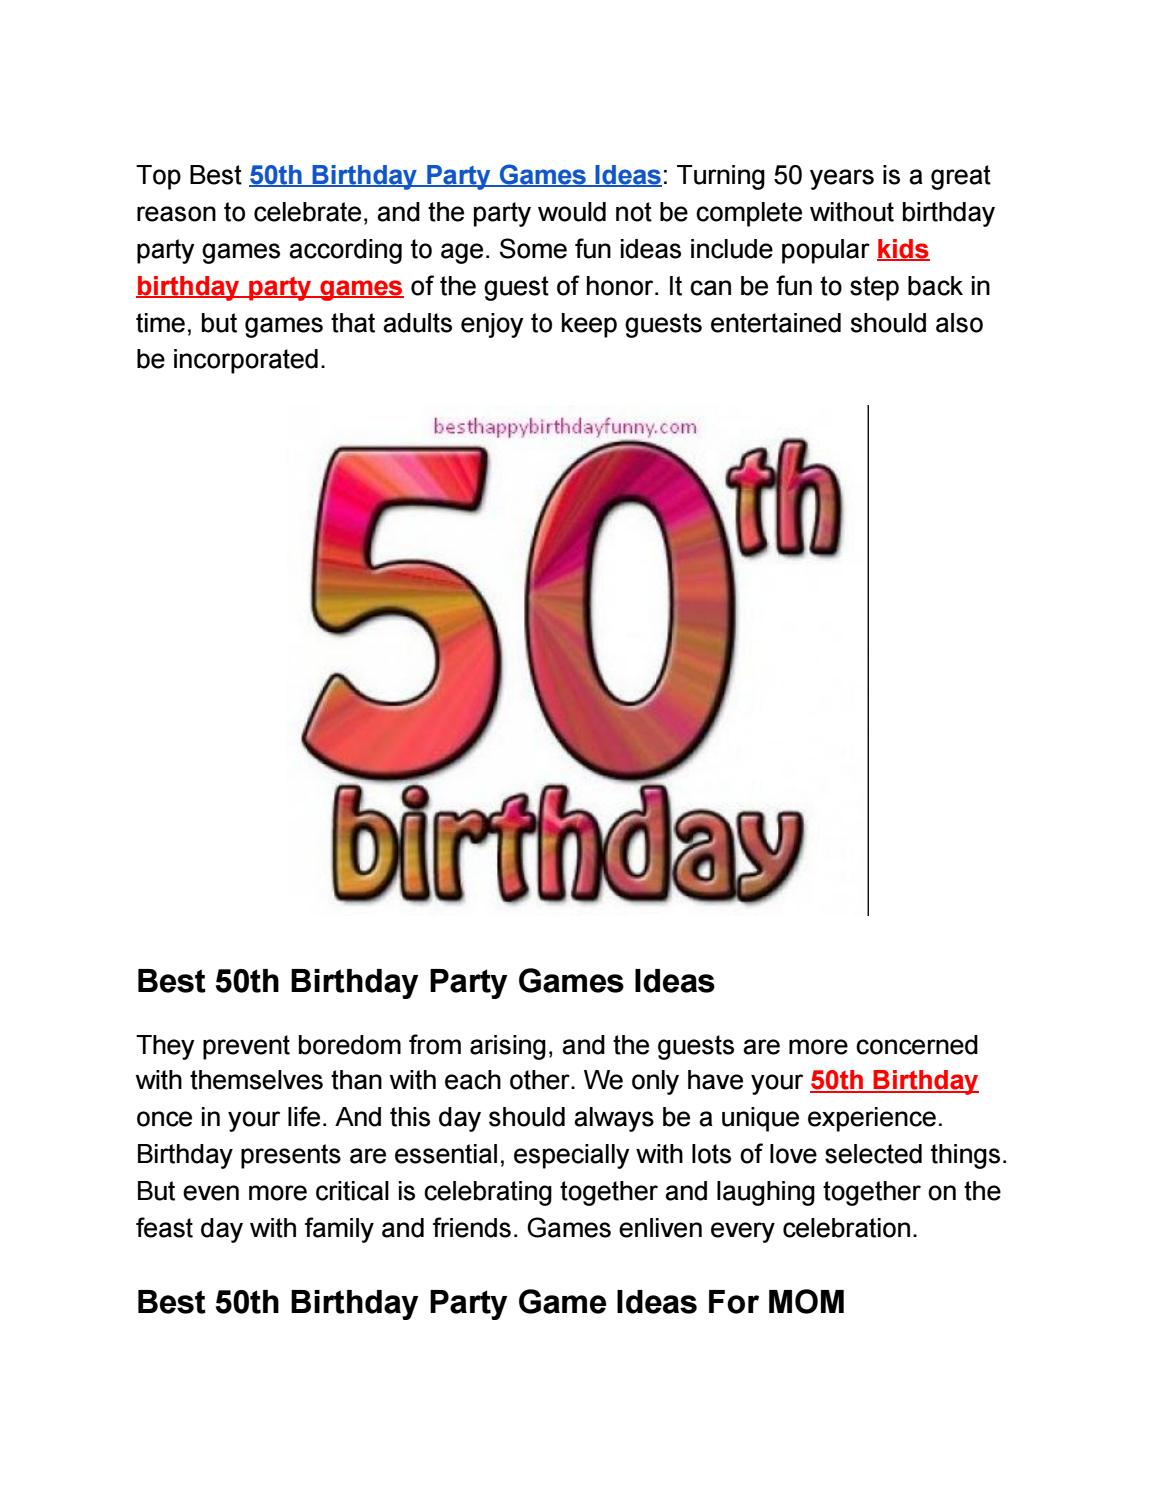 Best 50th Birthday Party Games Ideas Of 2020 By Happy Birthday To You Issuu